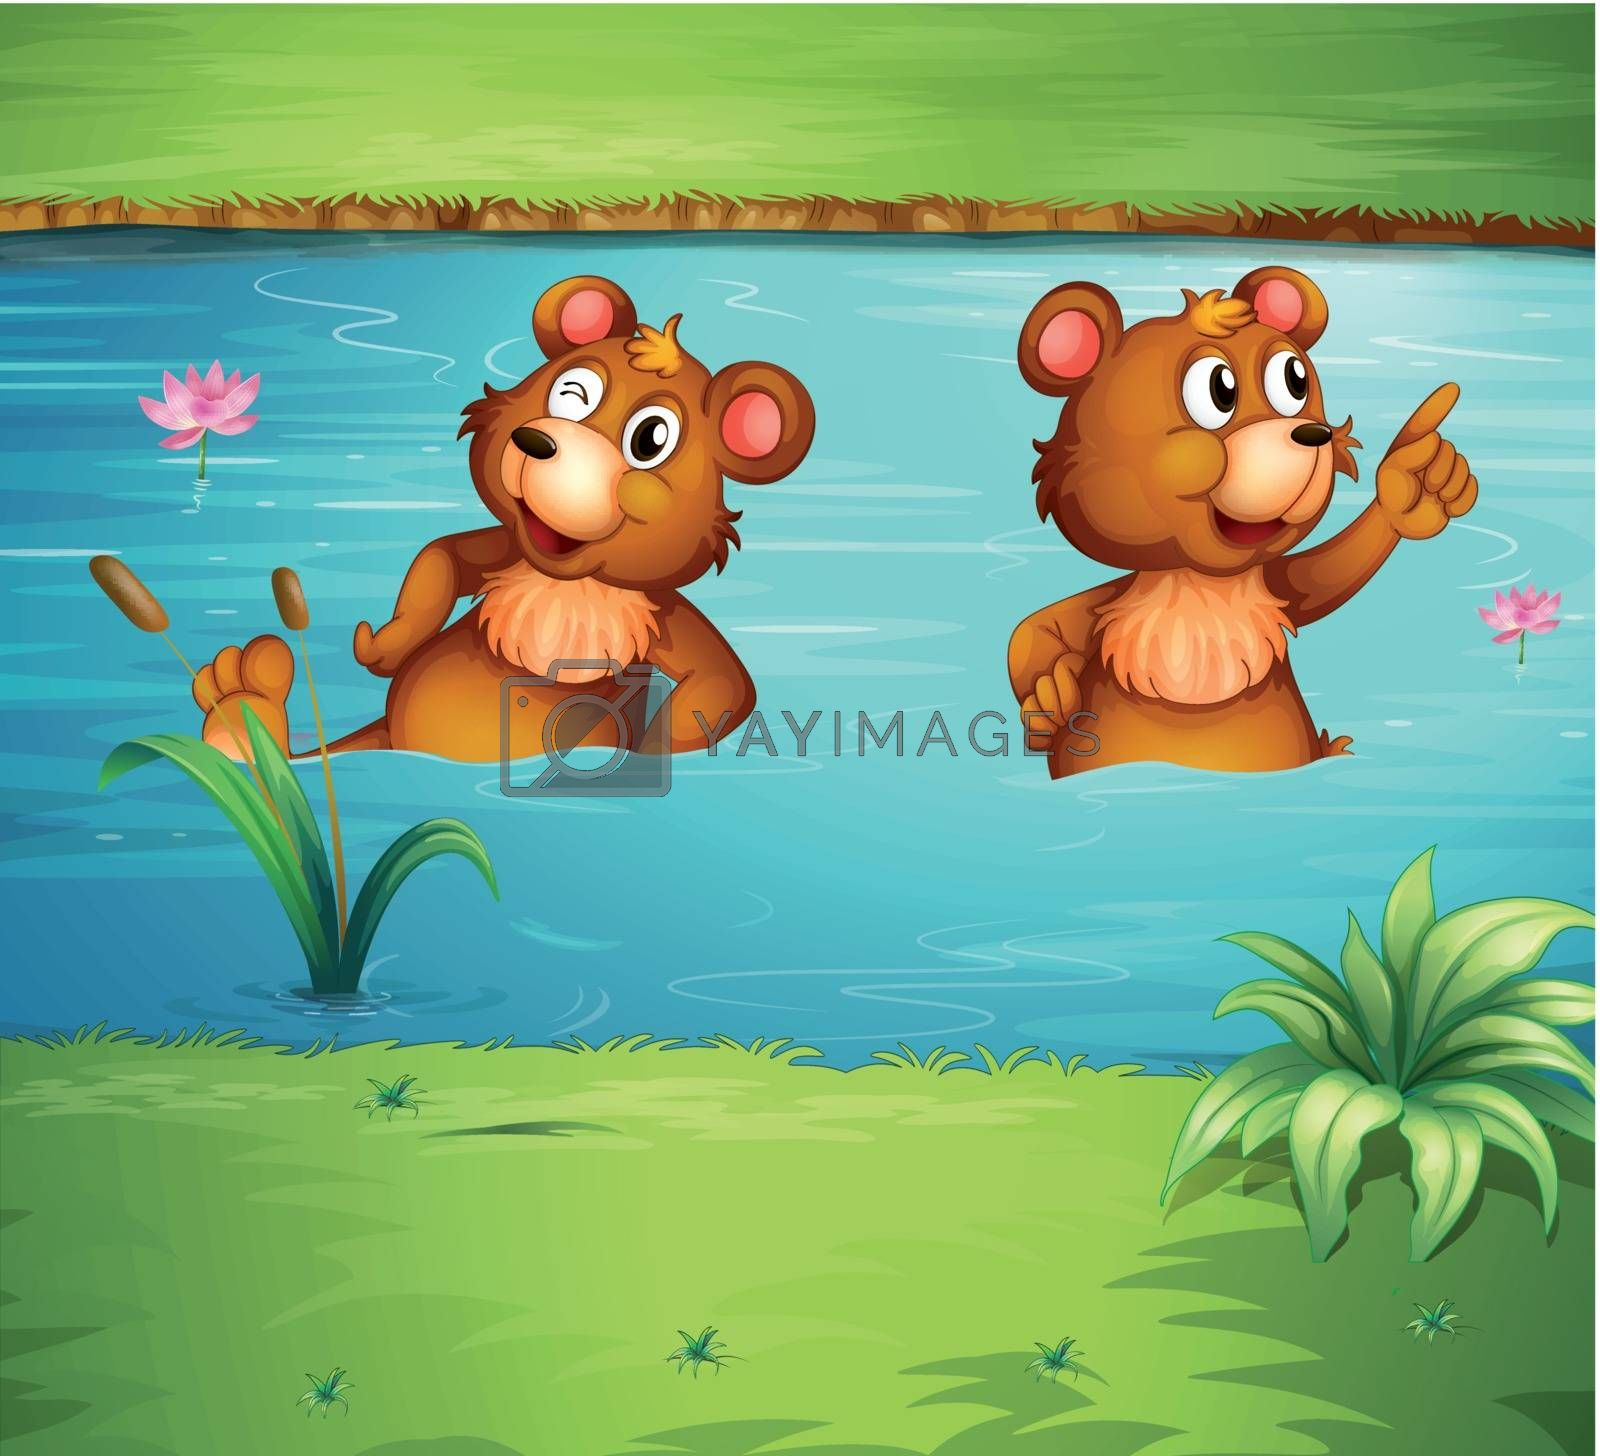 Illustration of two animals in the pond